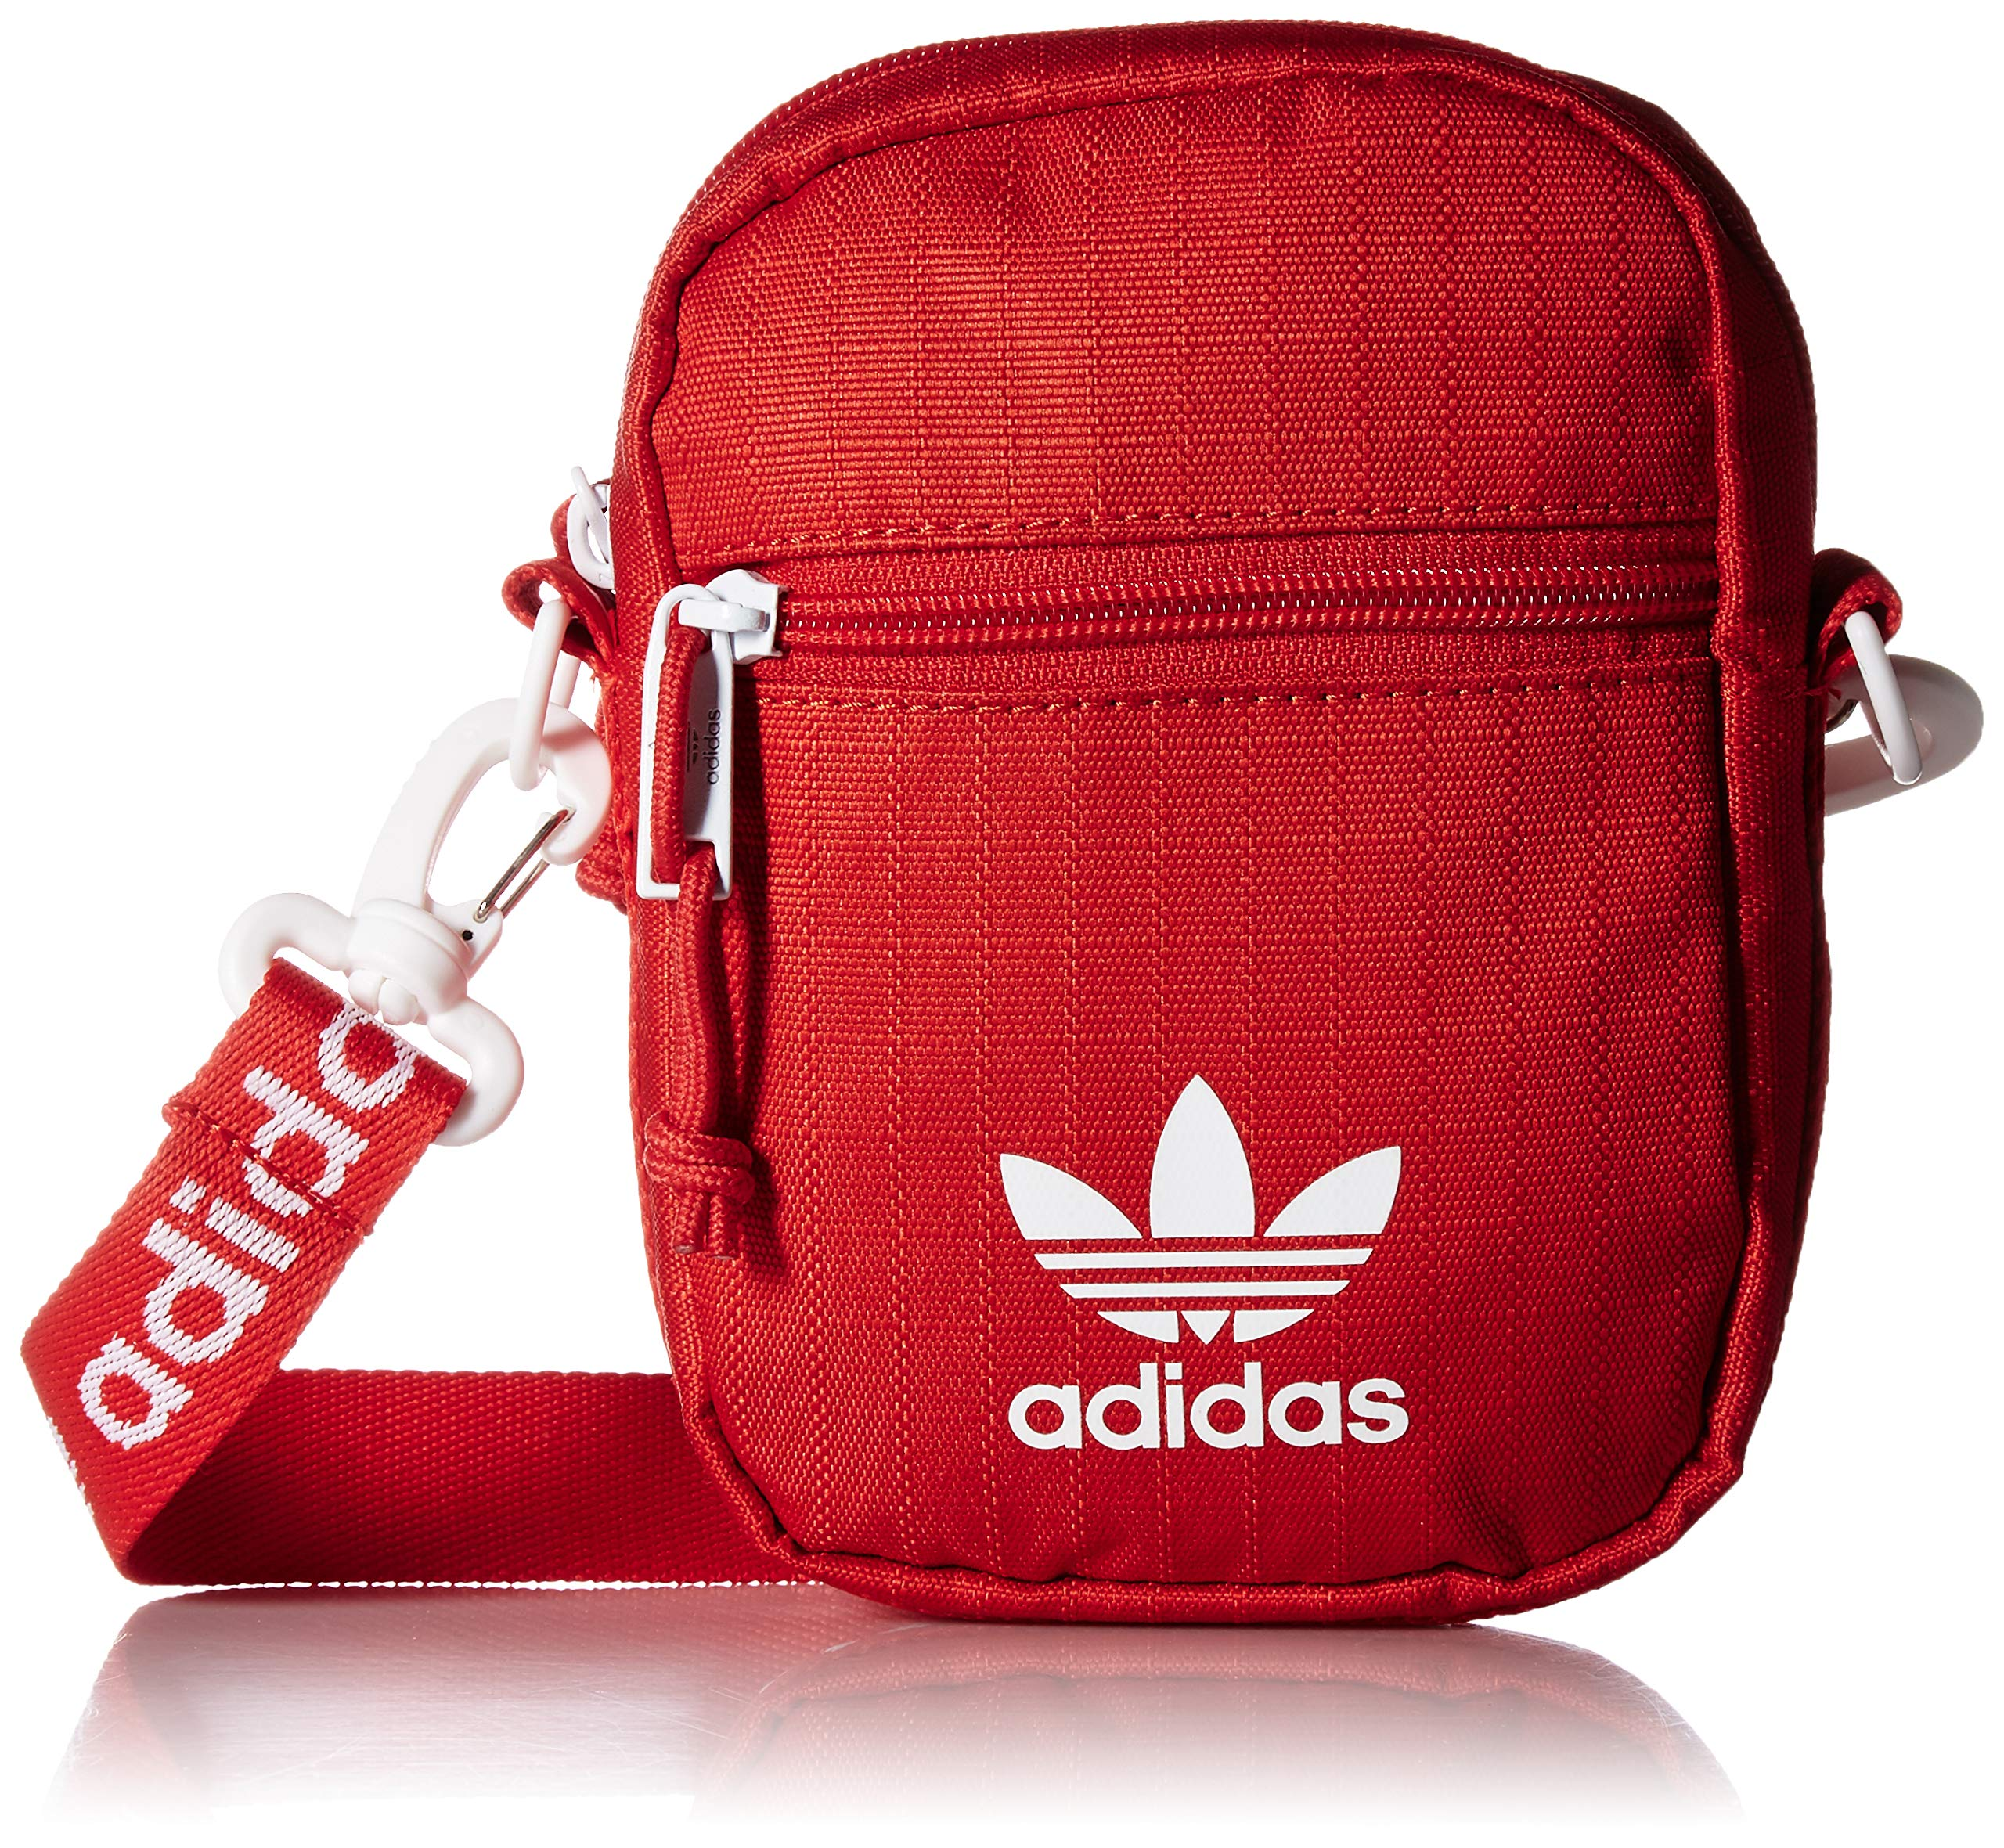 57e829d2d adidas Originals Festival Crossbody Bag, Red, One Size by adidas (Image #1